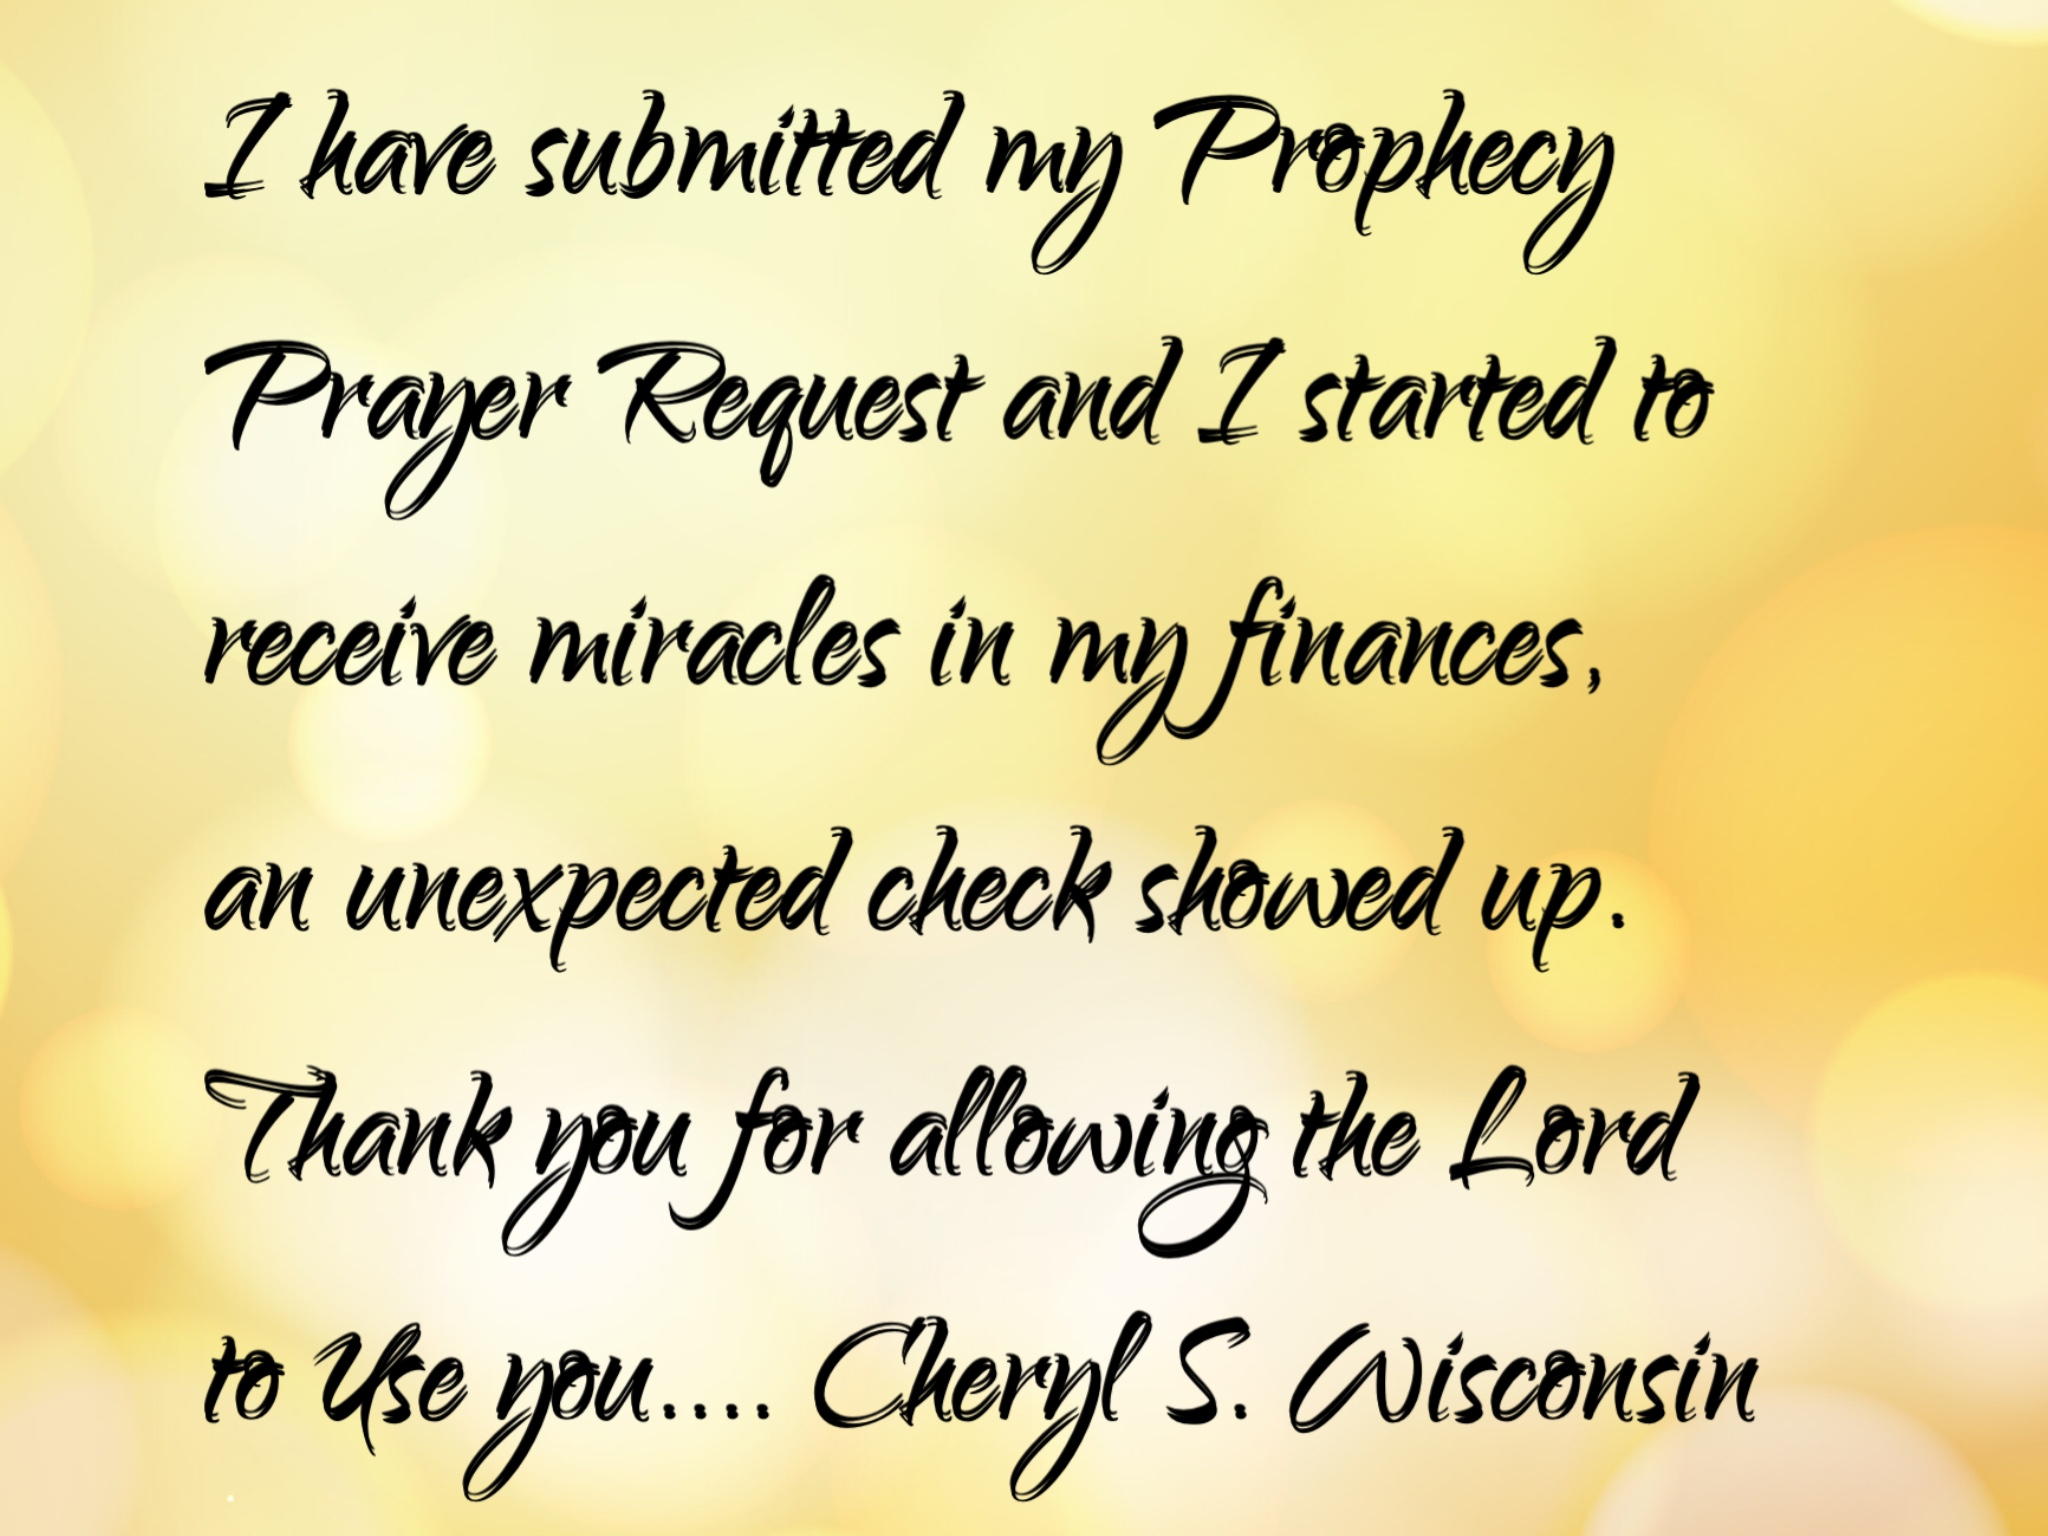 Prophecy Prayer Request is a Gift - Prophecy Request